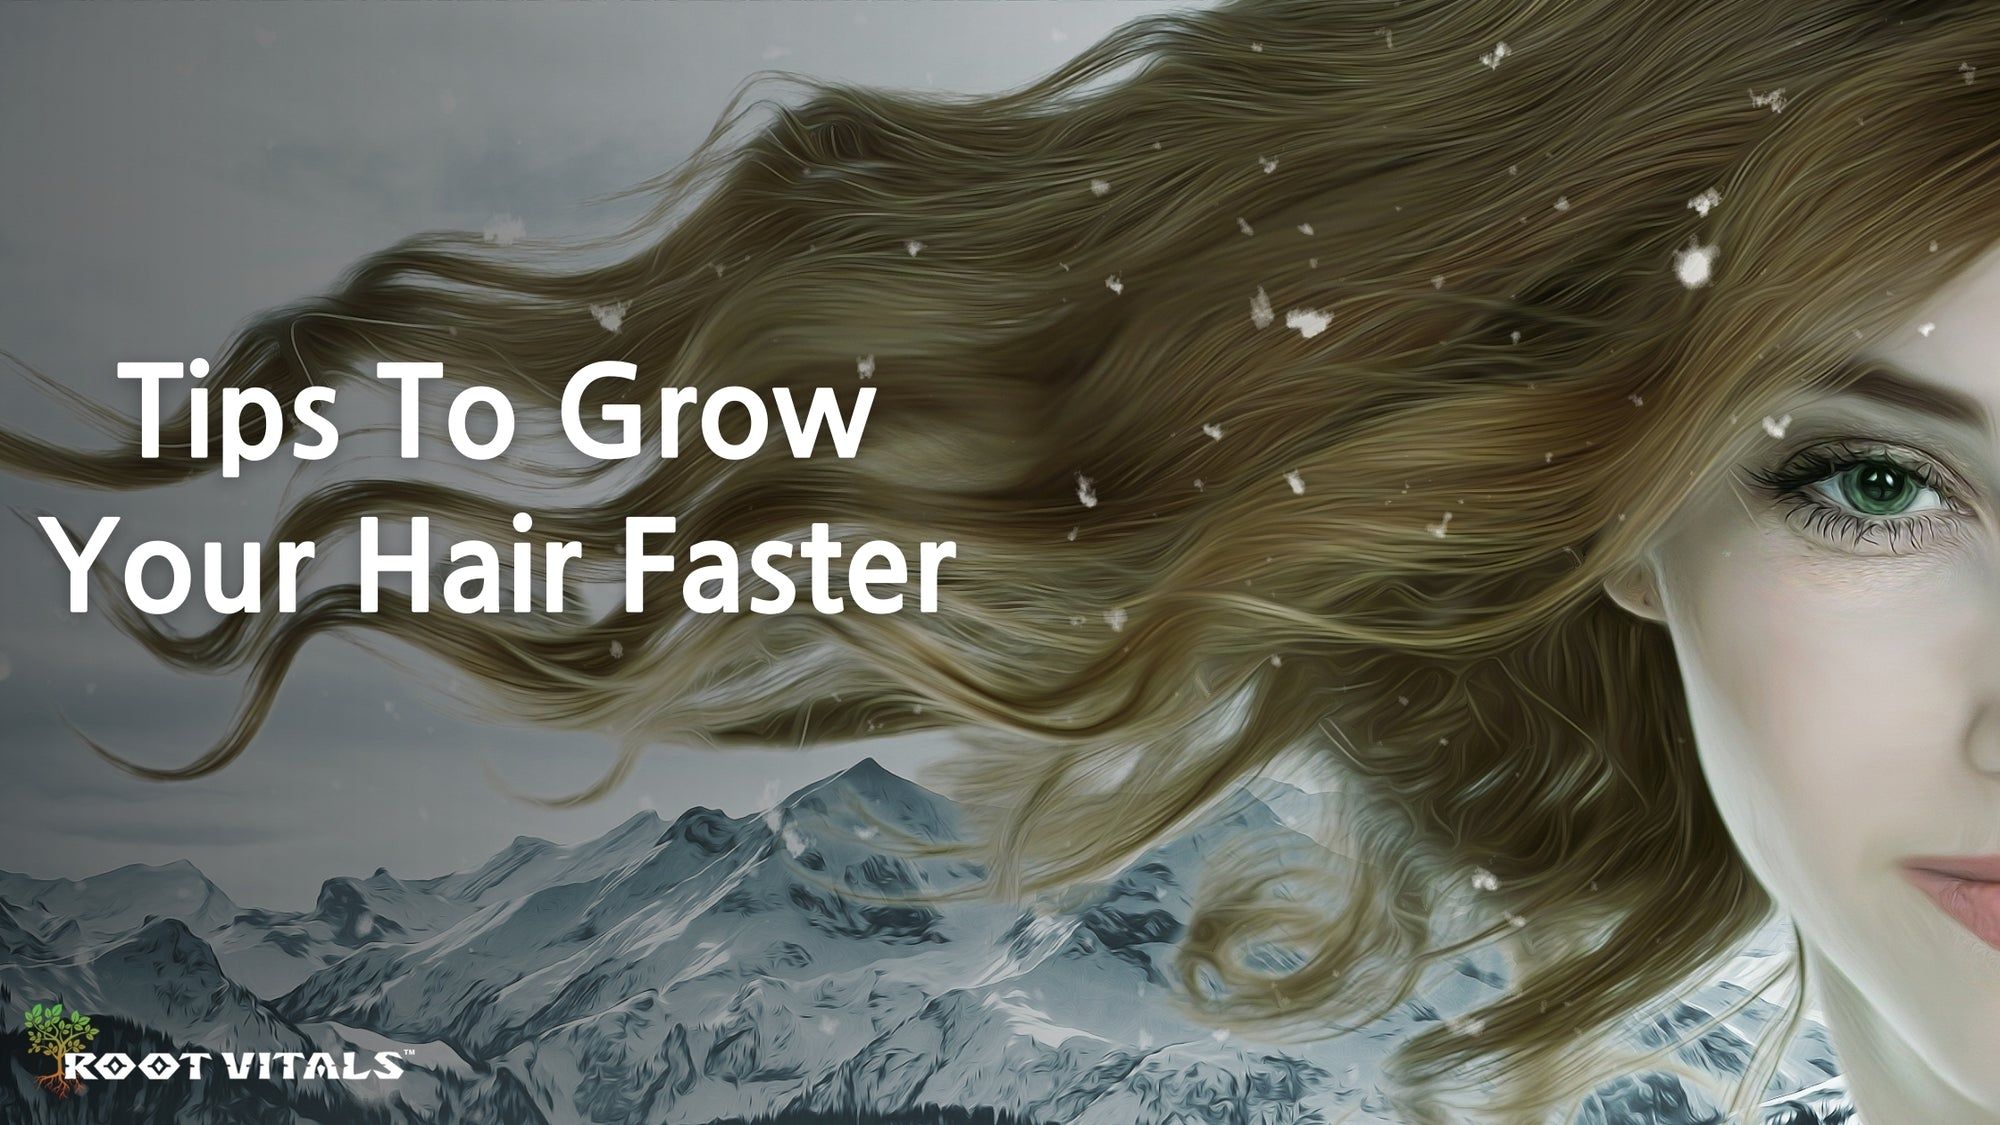 Tips to Grow Your Hair Faster Using Natural Hair Growth Tips